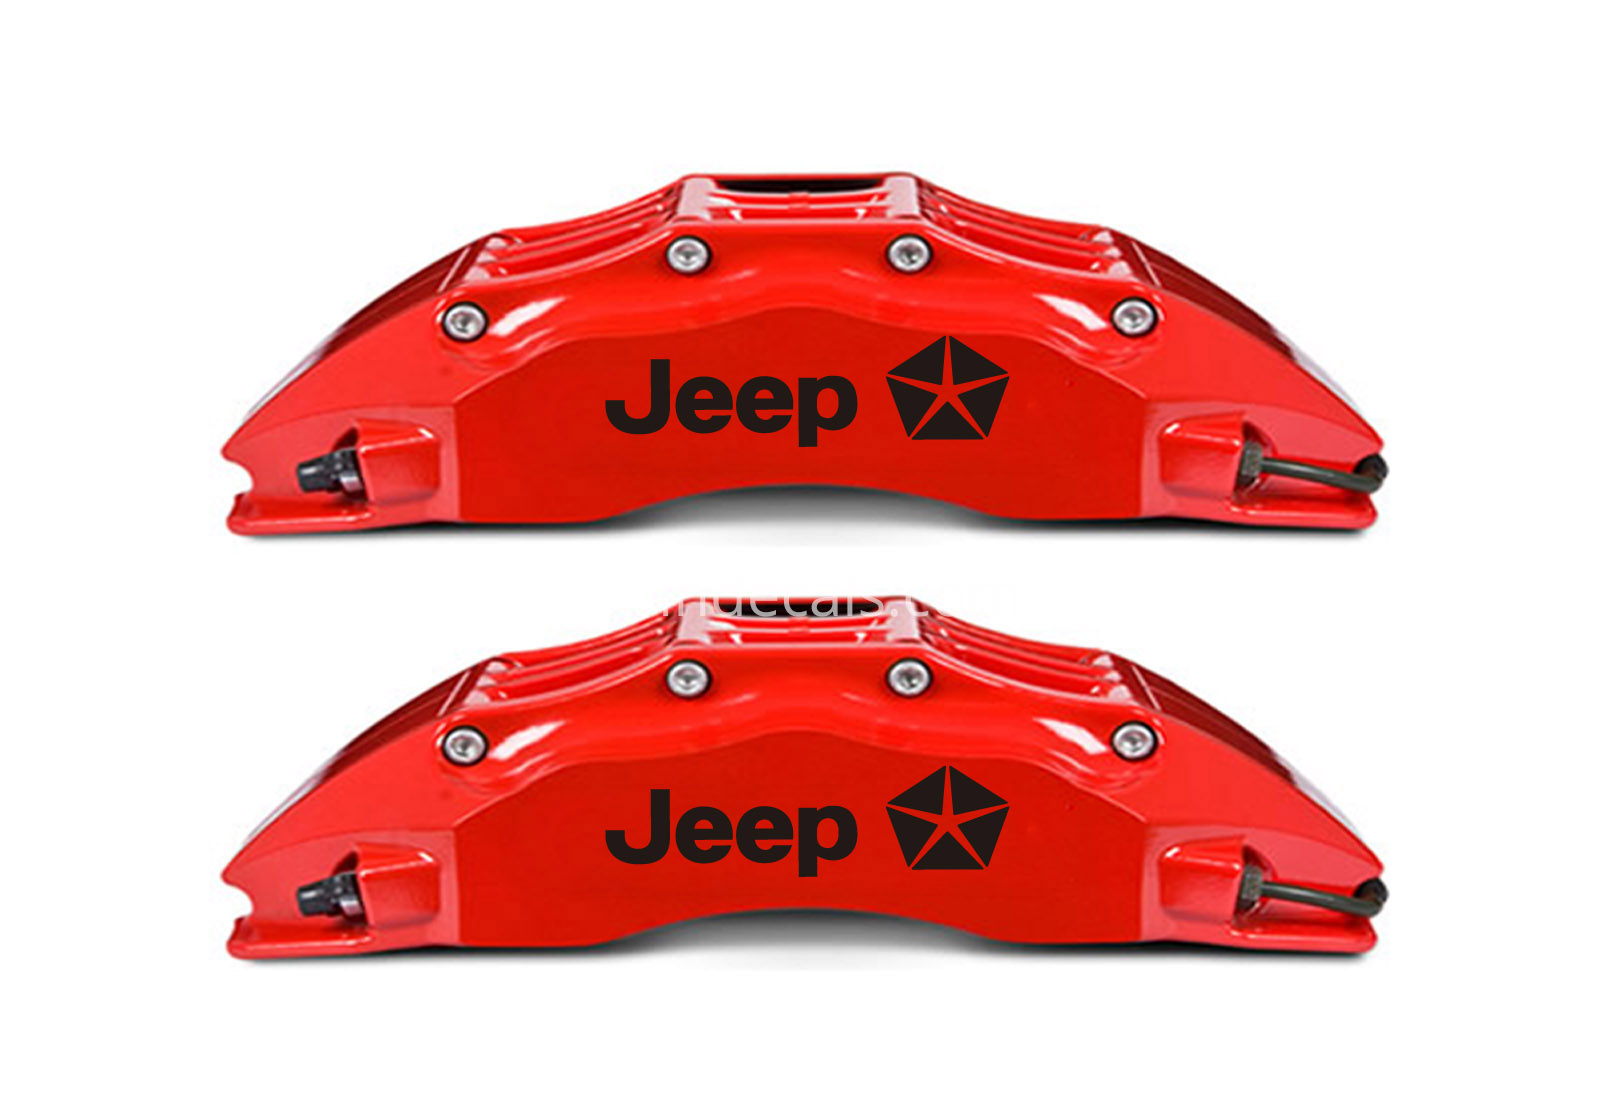 6 x Jeep Stickers for Brakes - Black